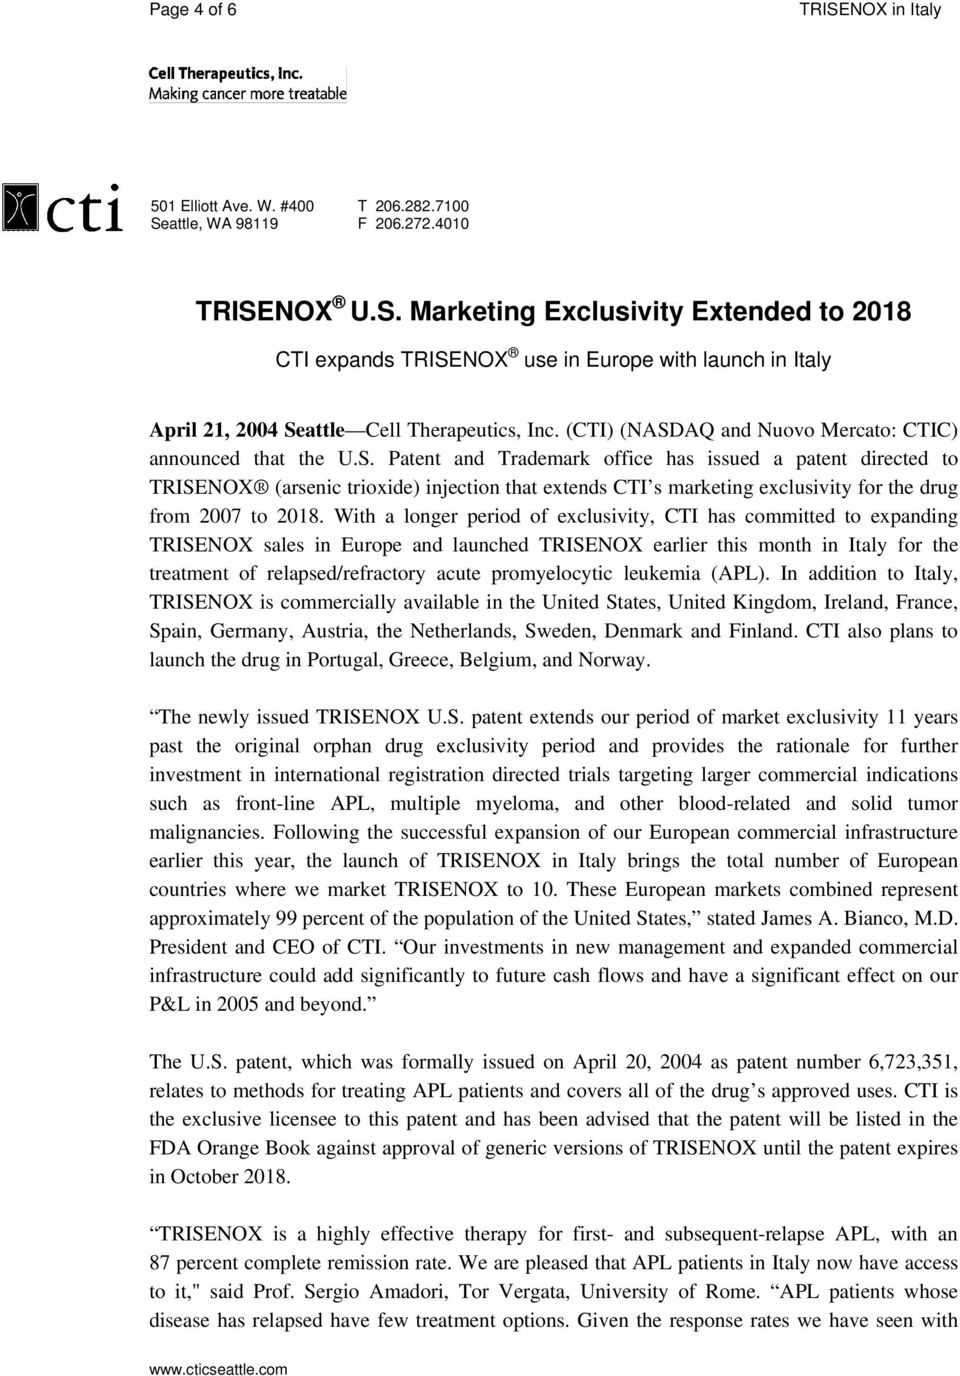 NOX U.S. Marketing Exclusivity Extended to 2018 CTI expands TRISENOX use in Europe with launch in Italy April 21, 2004 Seattle (CTI) (NASDAQ and Nuovo Mercato: CTIC) announced that the U.S. Patent and Trademark office has issued a patent directed to TRISENOX (arsenic trioxide) injection that extends CTI s marketing exclusivity for the drug from 2007 to 2018.